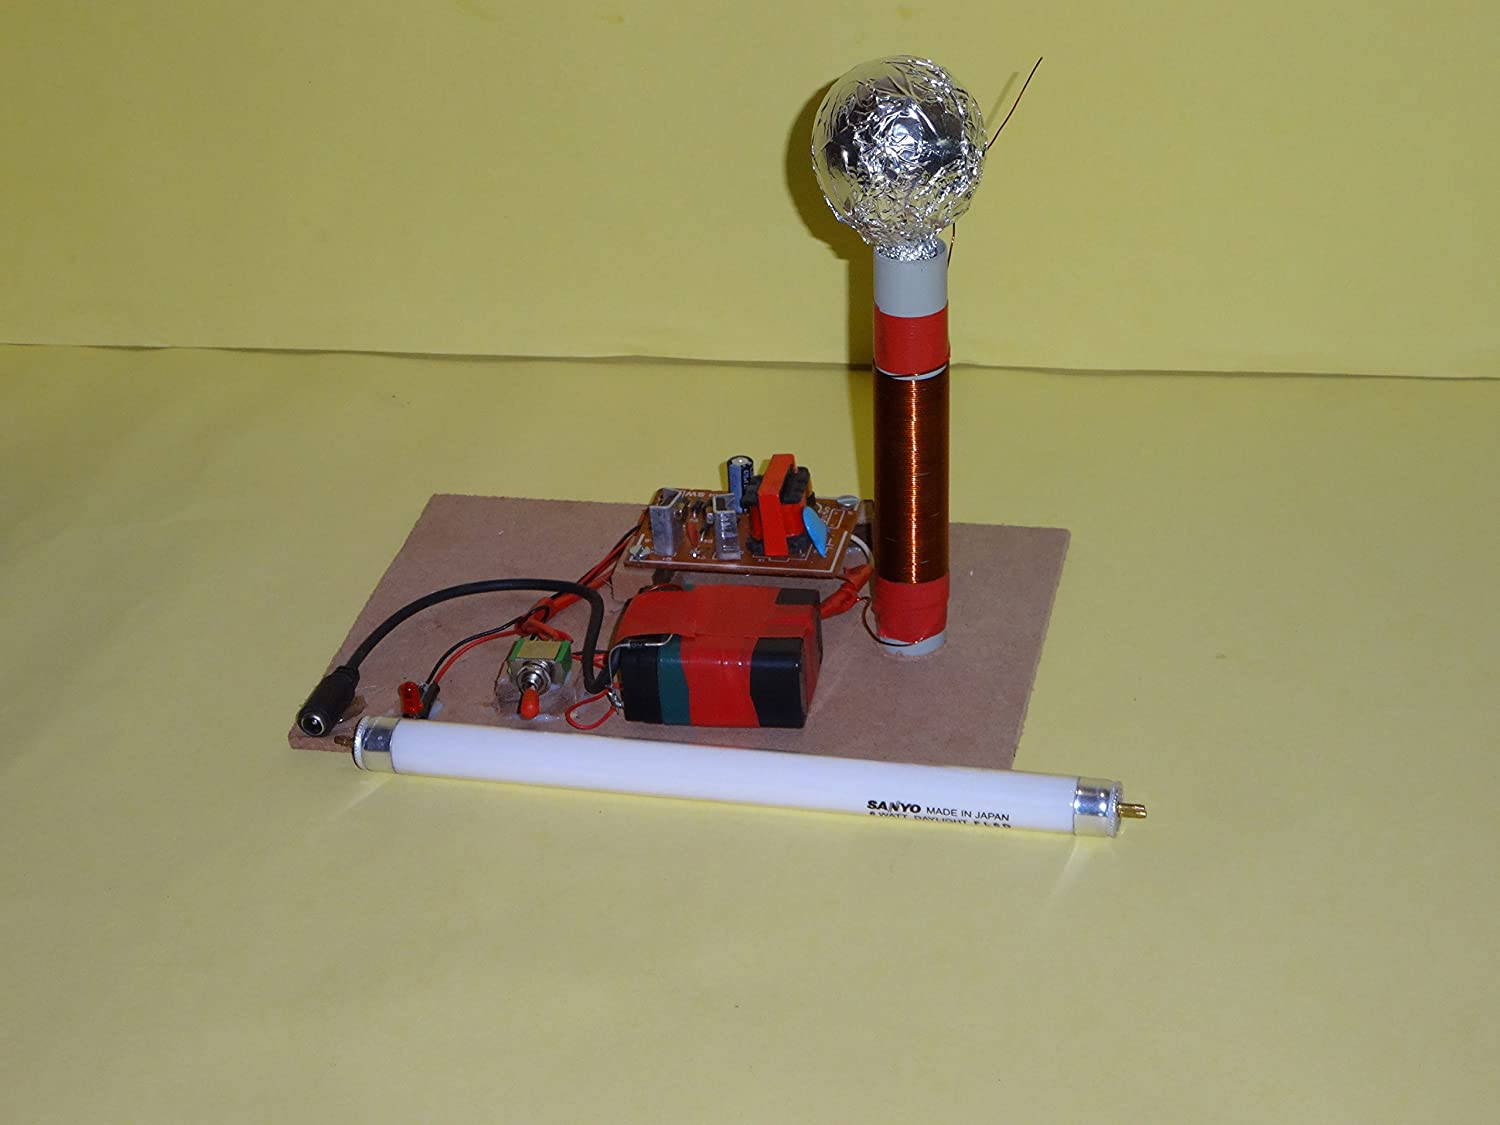 Buy SANTOSH PROJECT MAKER Tesla Coil Online at Low Prices in India